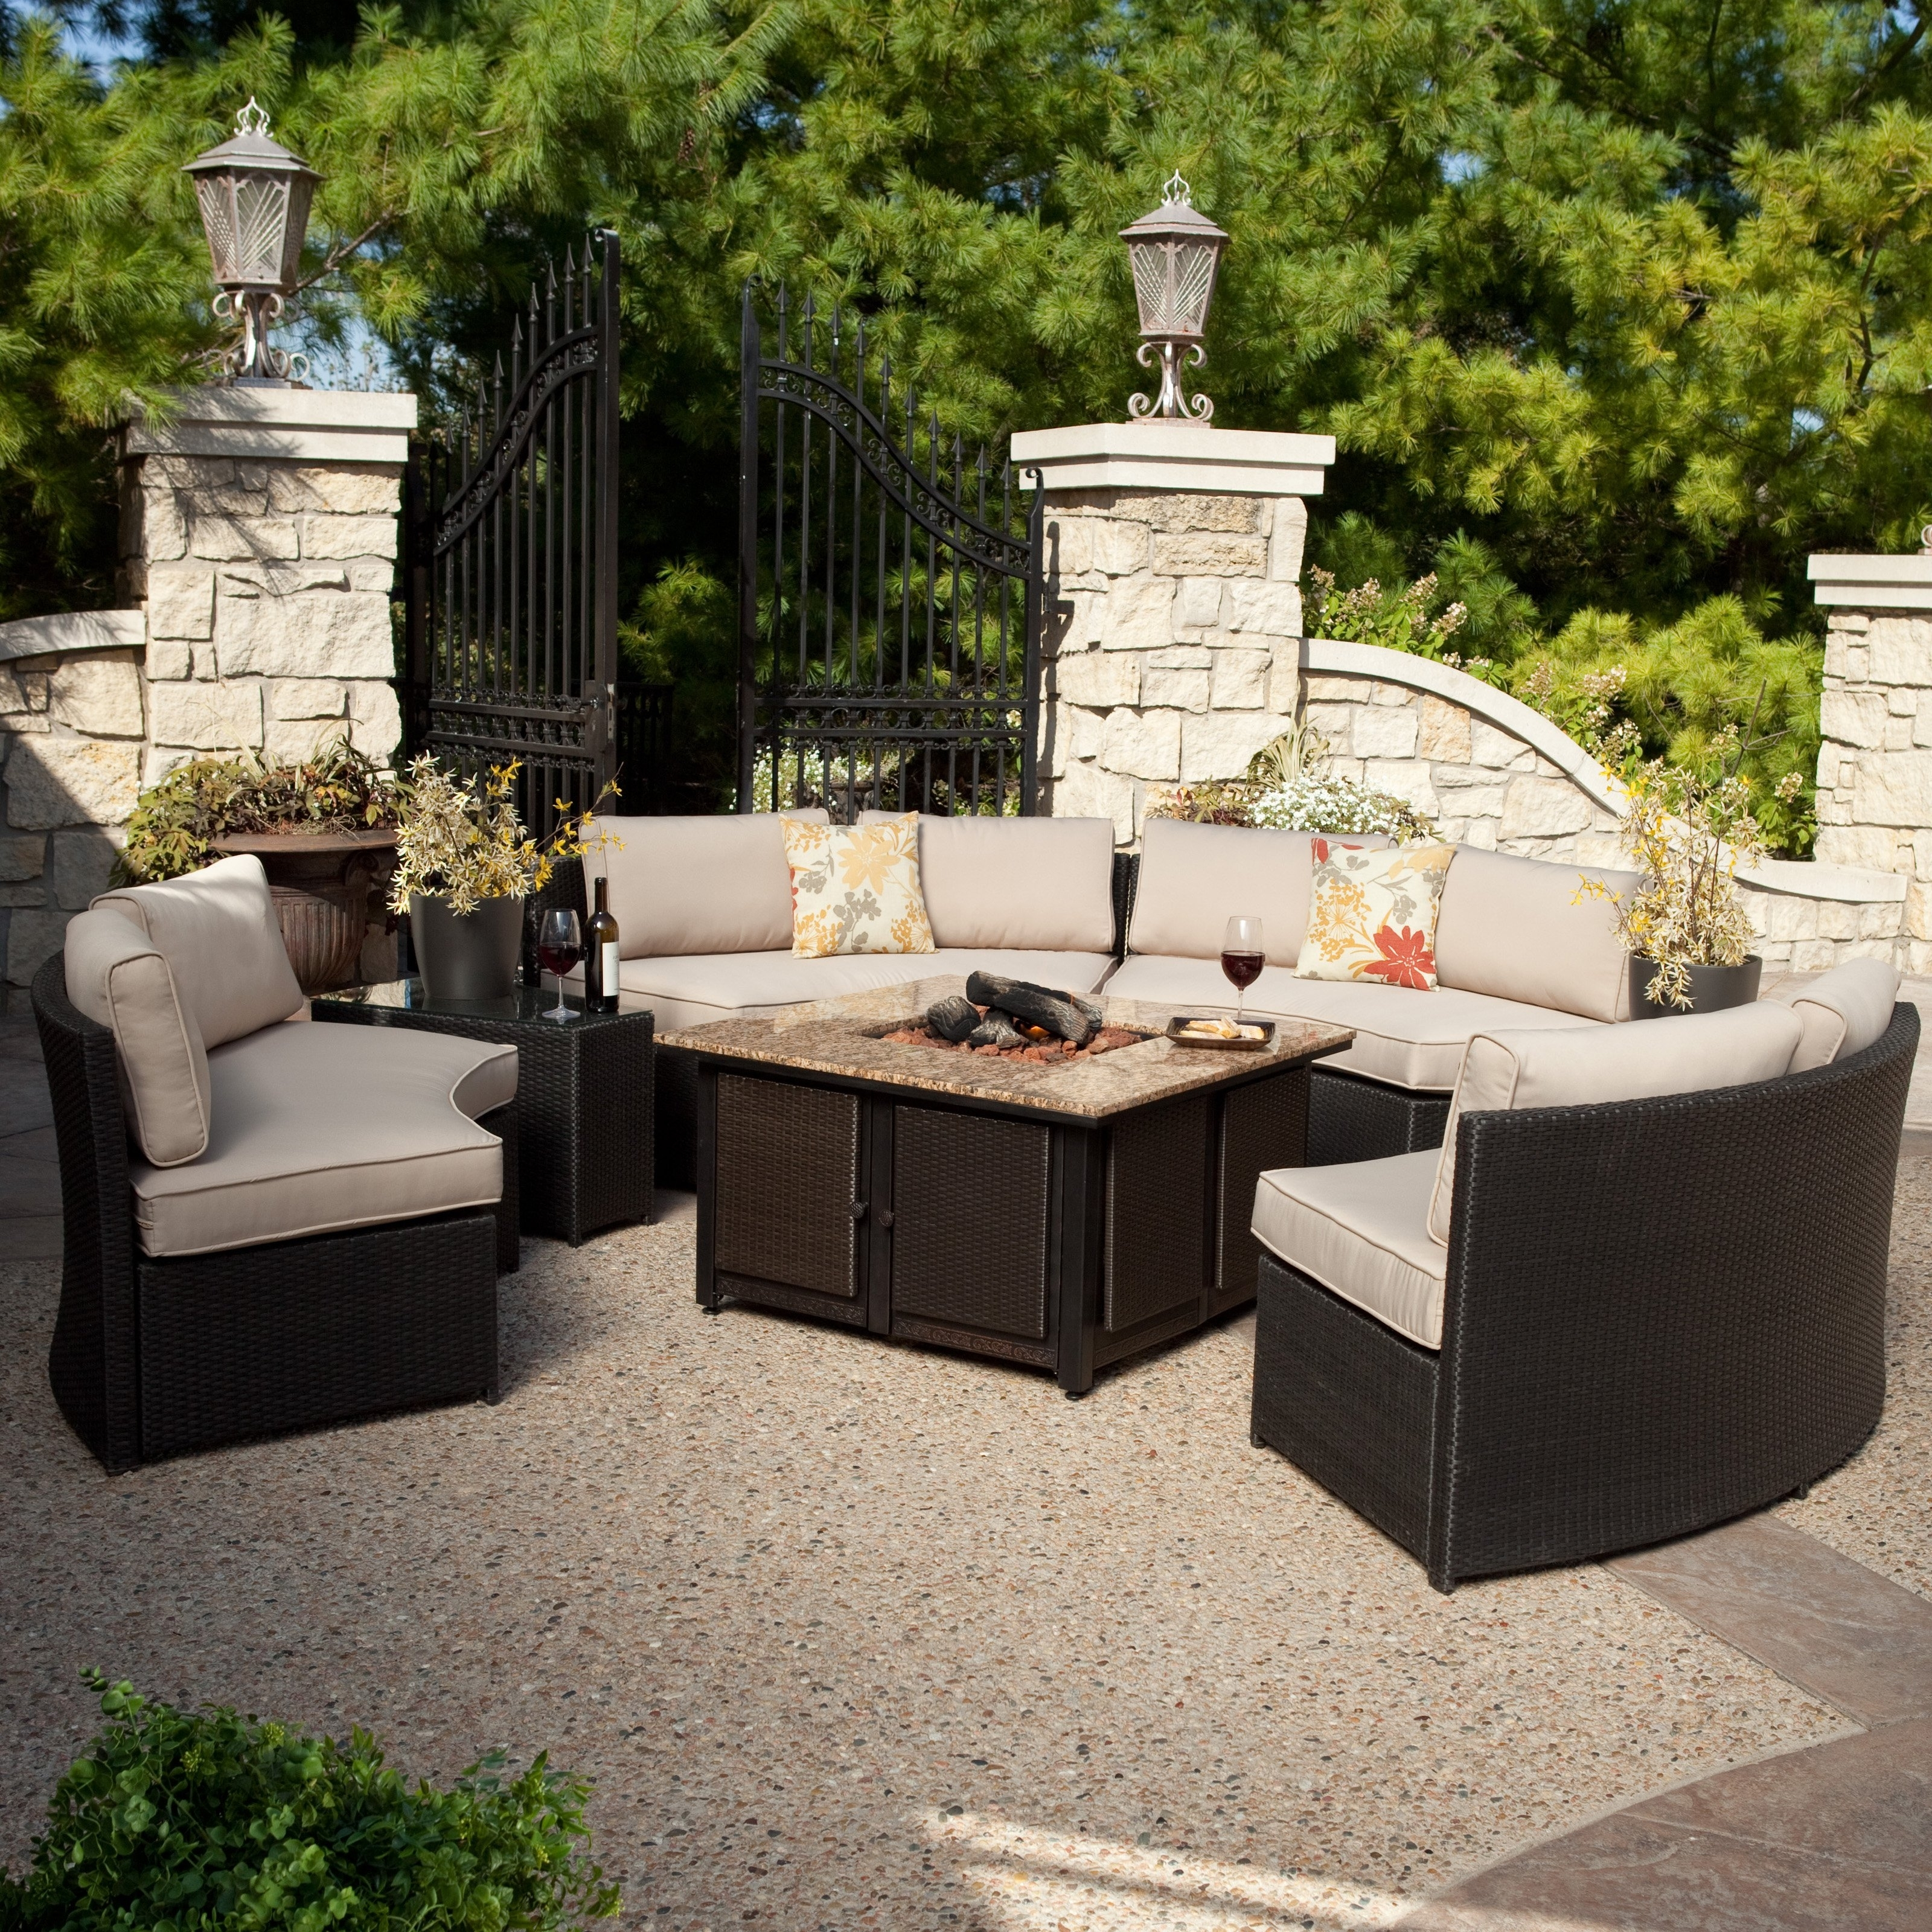 Patio Furniture Conversation Sets With Fire Pit In Trendy Revisited Fire Pit Conversation Sets Shrewd Patio Furniture Decor (View 18 of 20)